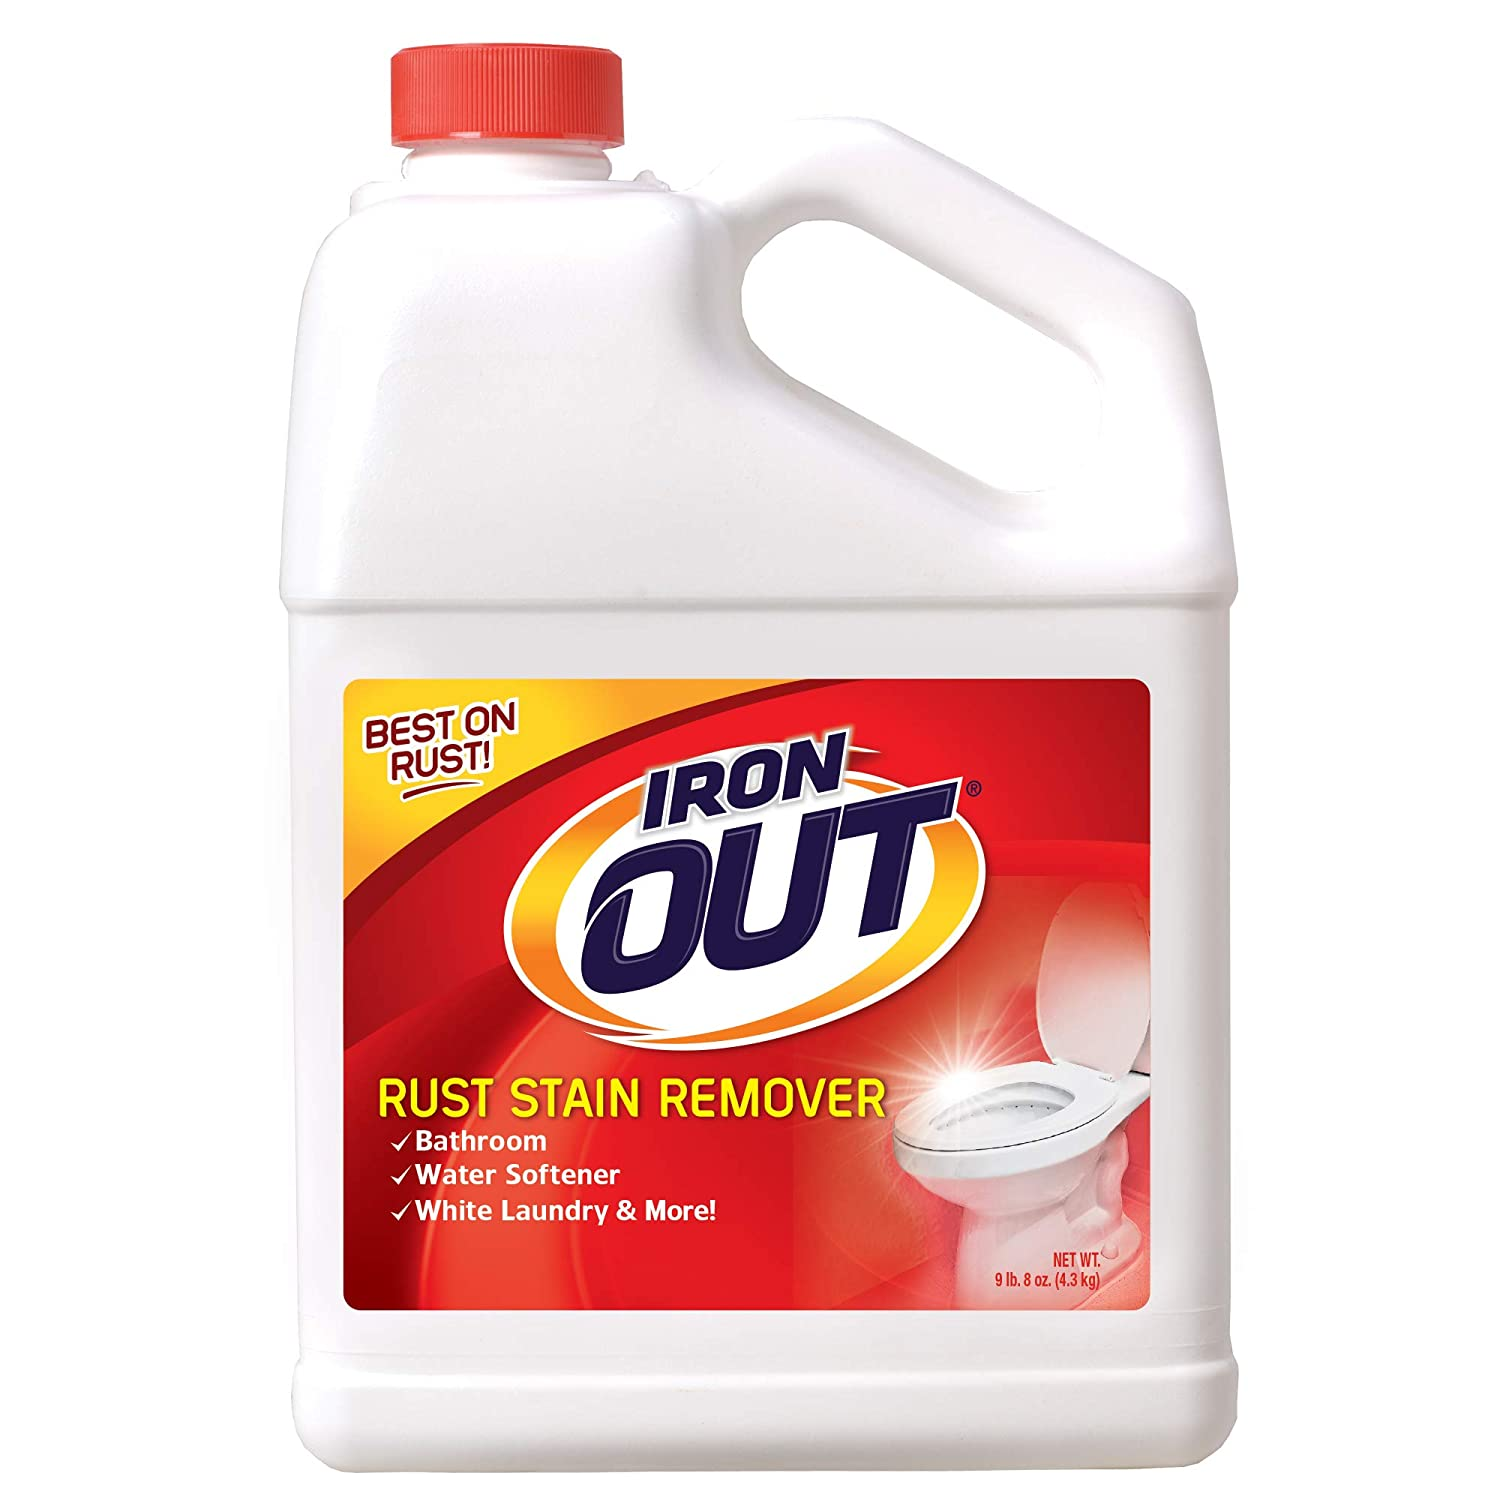 Iron OUT Rust Stain Remover Powder, 9.5 lb. Bottle